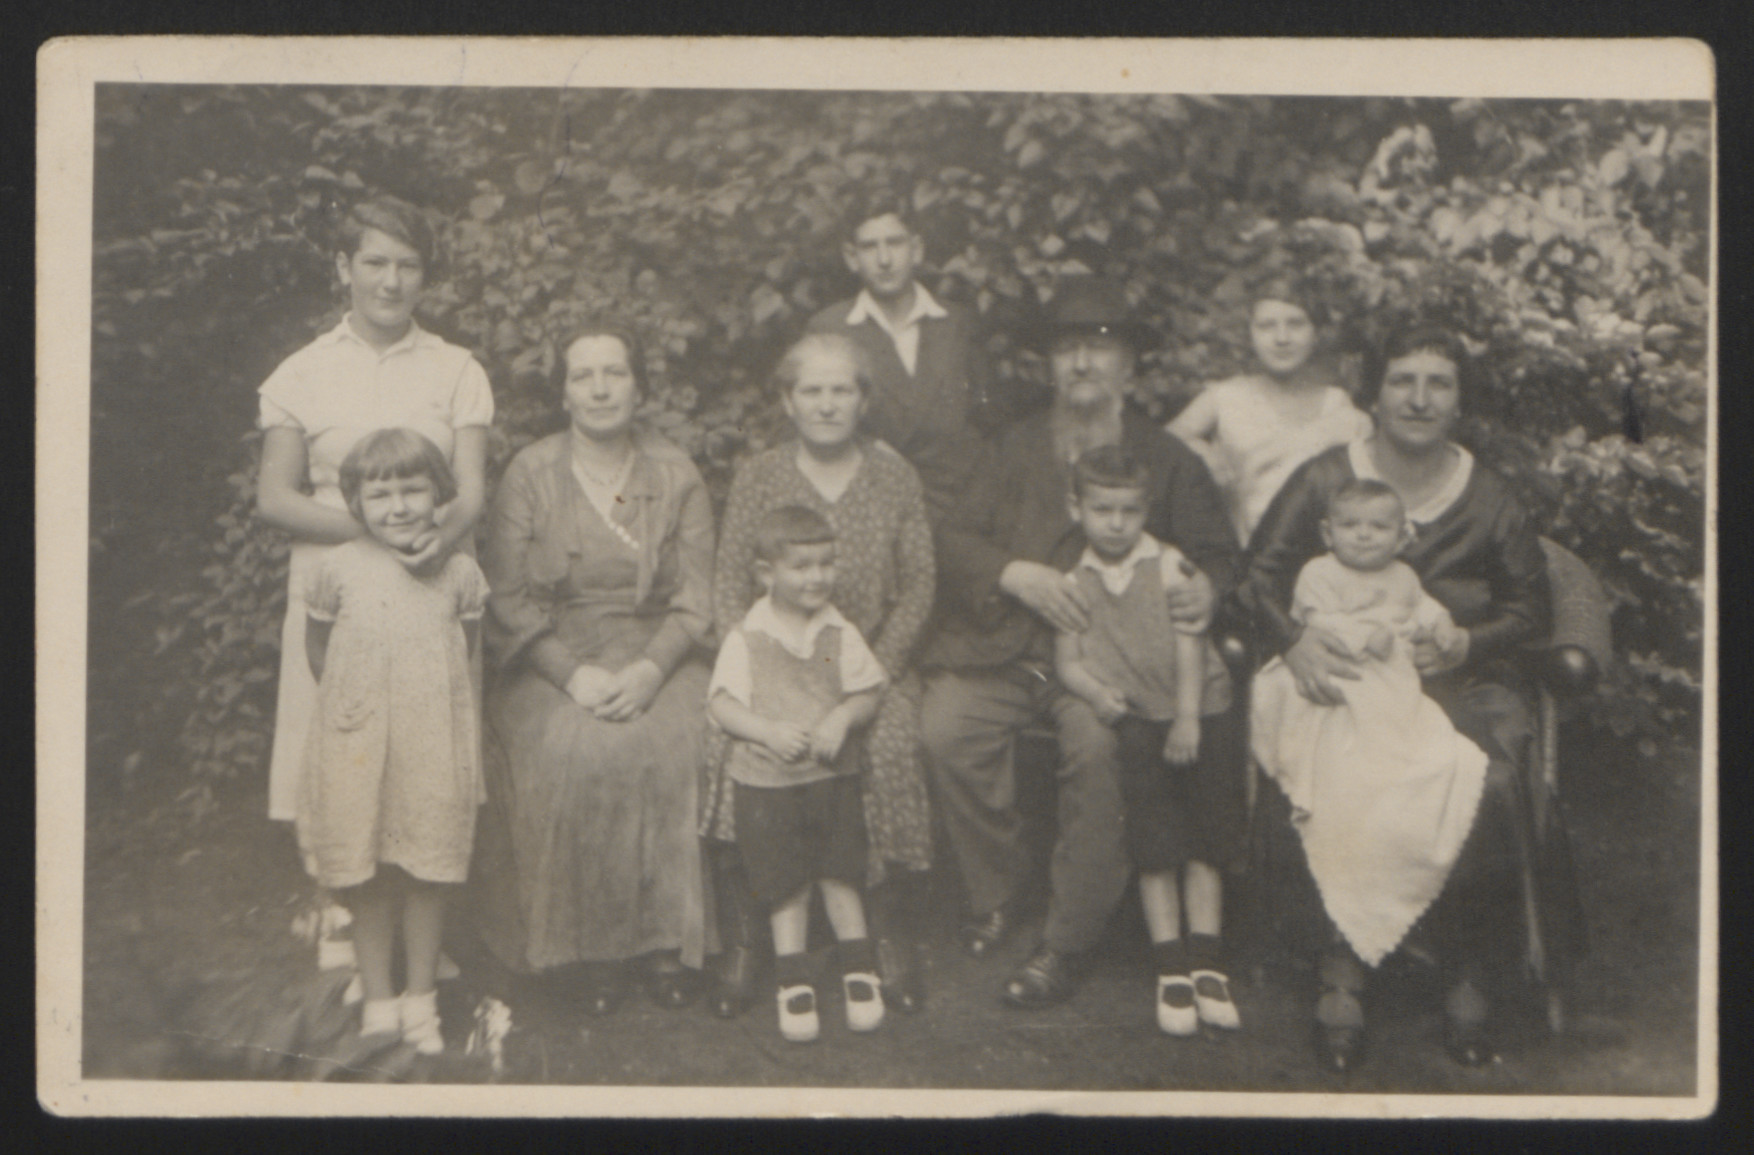 Portrait of the Hausner family of Hamburg, Germany.   Pictured are Gershon and Rivka Hausner (seated in the center), their son Natan Hausner (back row, center), their daughter Sara (Hausner) Selzer (second from the left), her daughters Cilli and Gila (far left),  Rachel (Hausner) (far right), and her sons Eli, Karl Heinz, and Wolfgang (front, left to right).